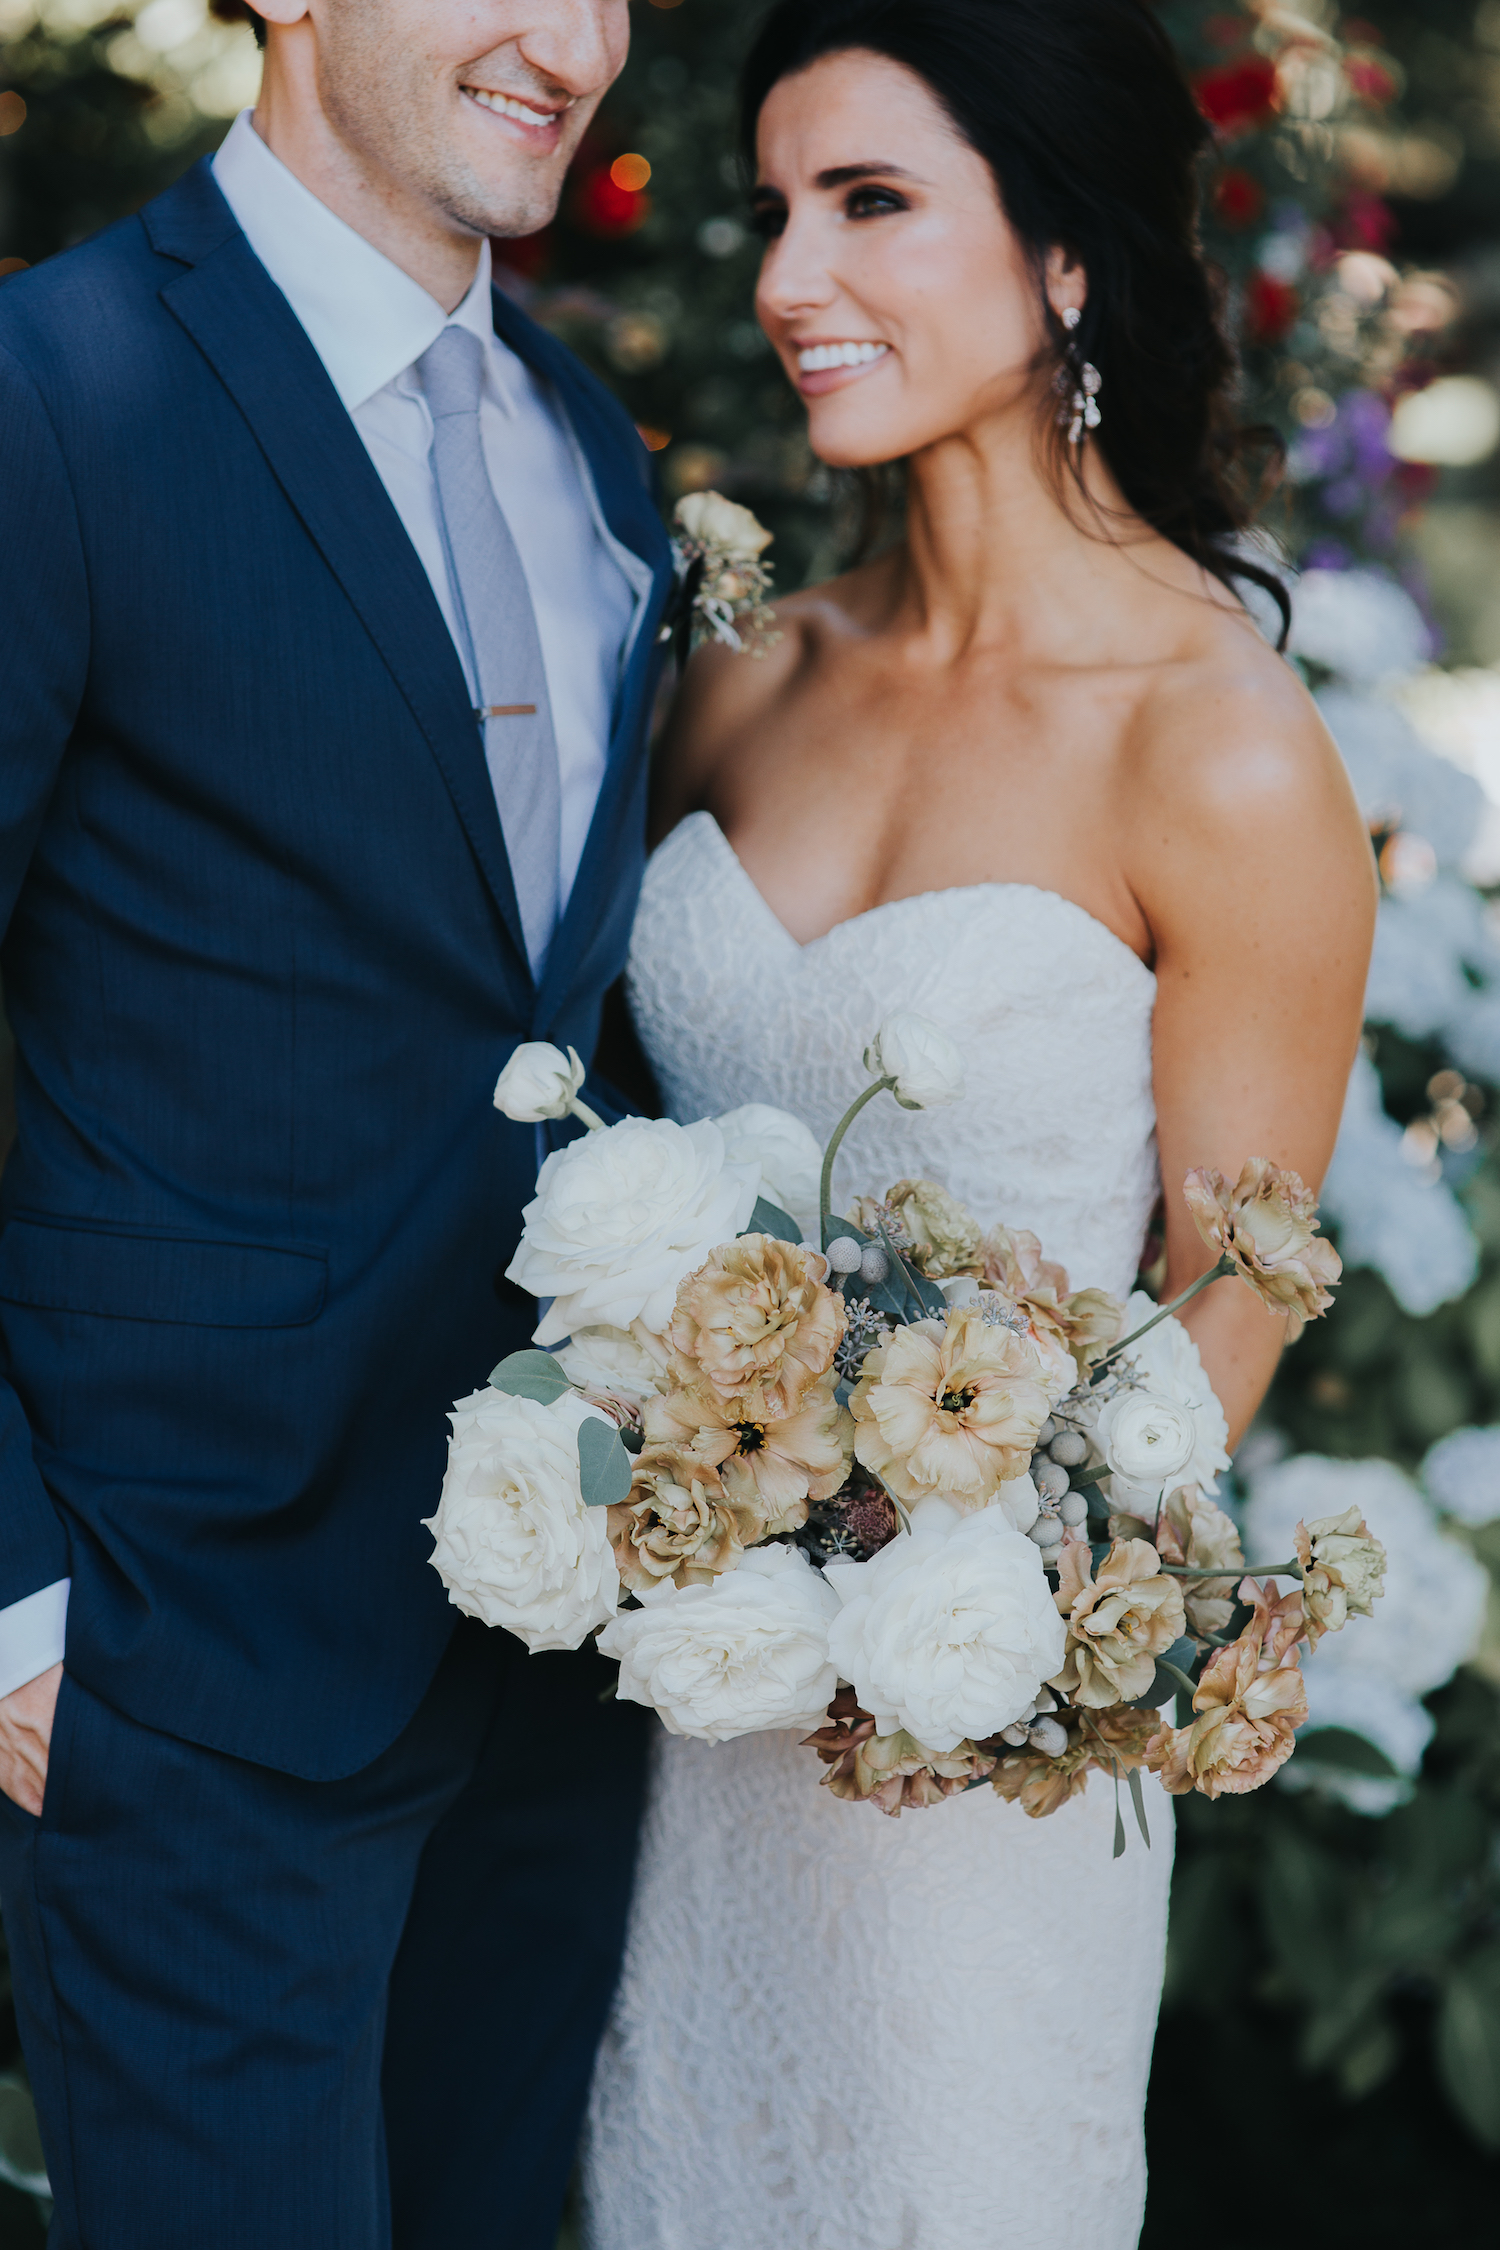 Wild Bloom Floral - Rachel Birkhofer Photography - Jessica and Phil - Real Wedding - Seattle 18.jpeg